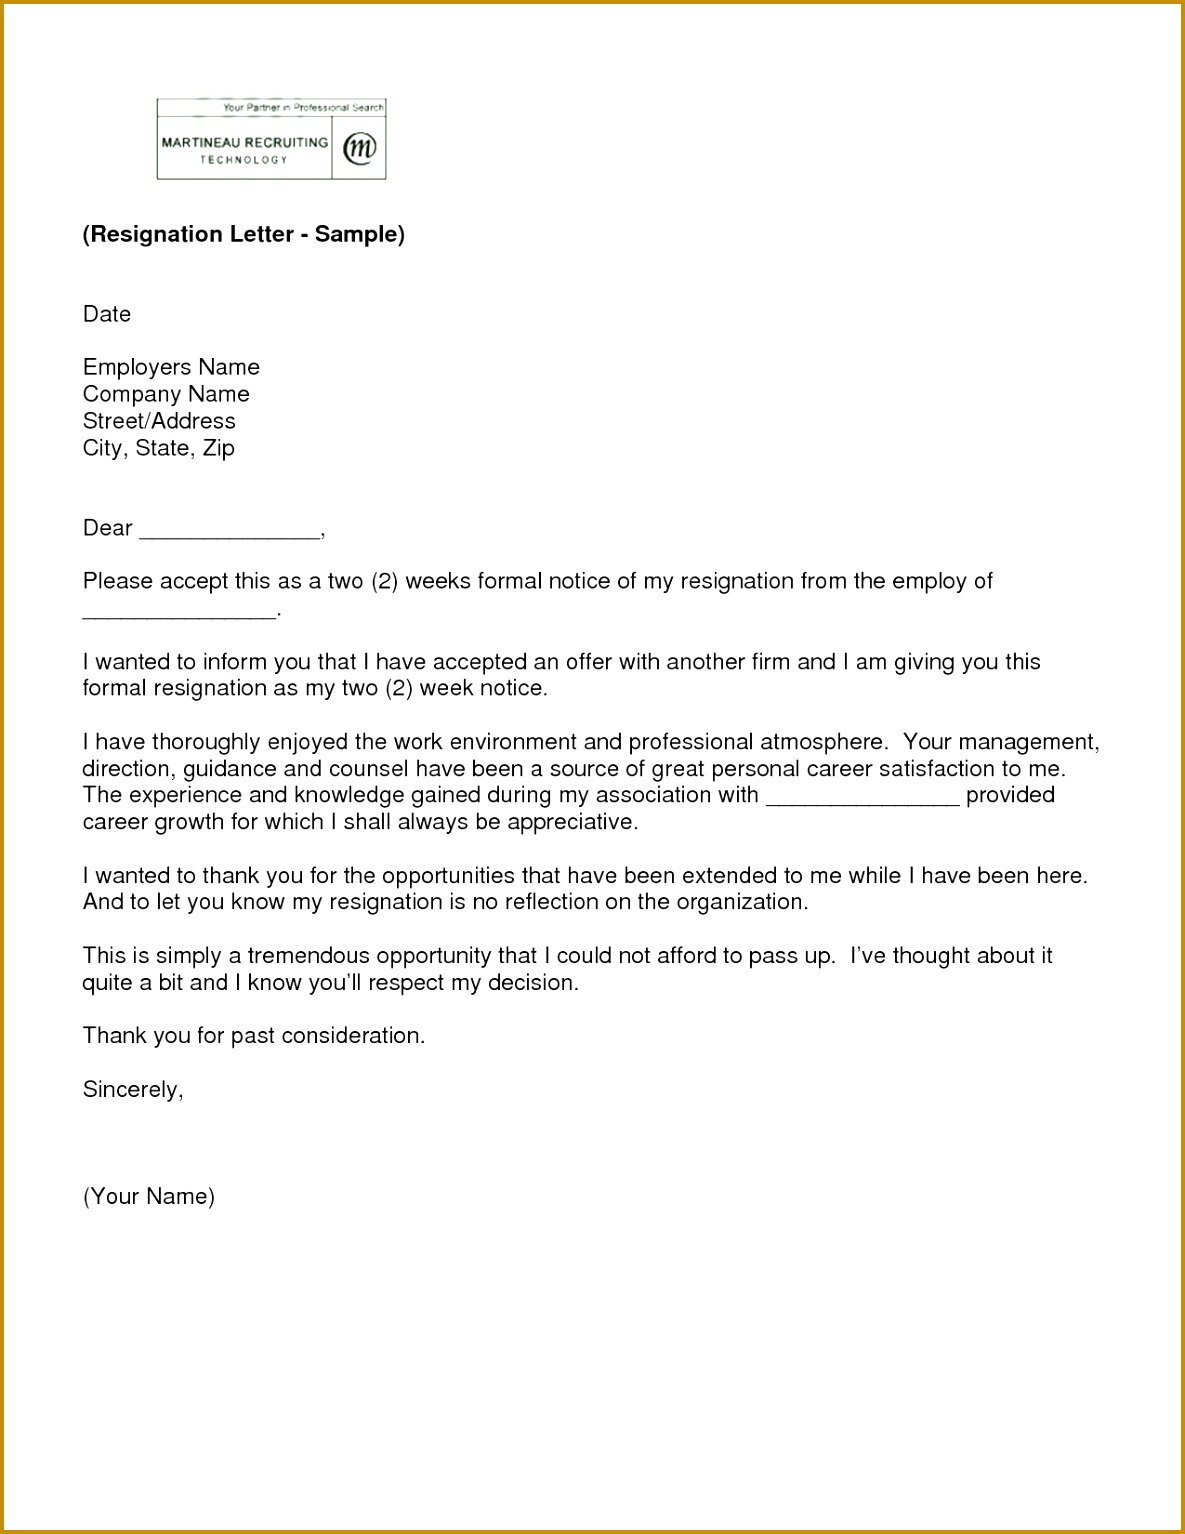 letter of resignation 2 weeks notice template 15341185